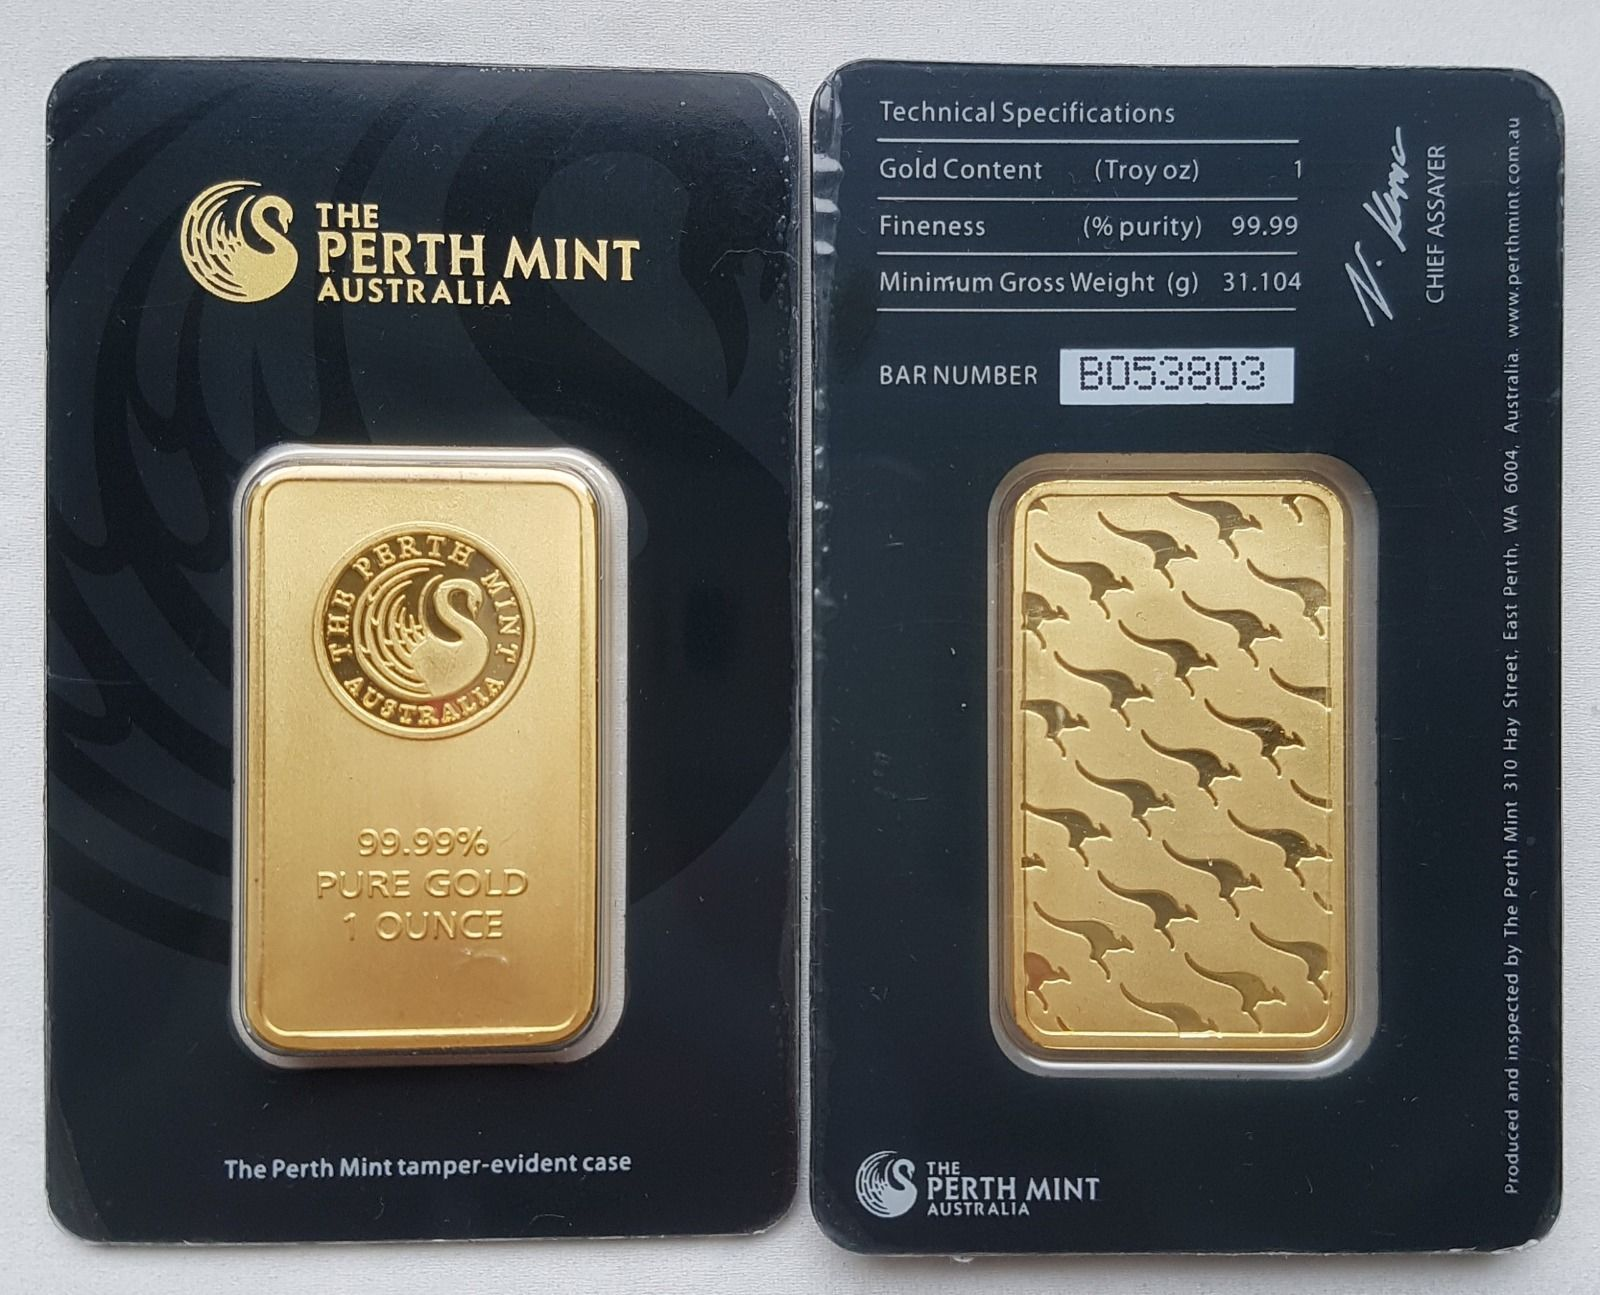 Fake Counterfeit Perth Mint Gold Bars